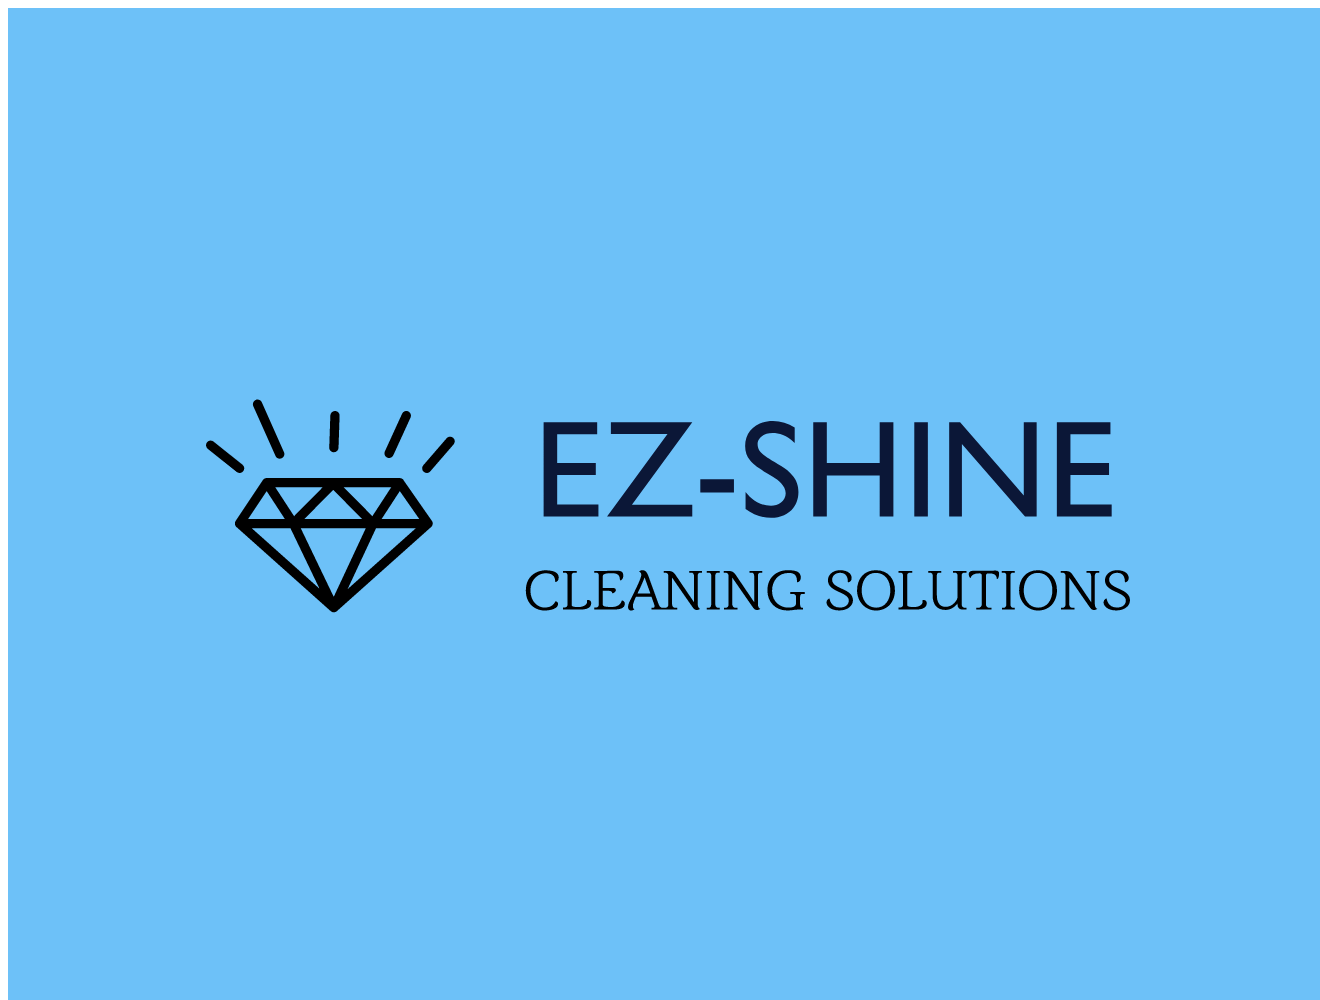 EZ-SHINE Cleaning Solutions primary image